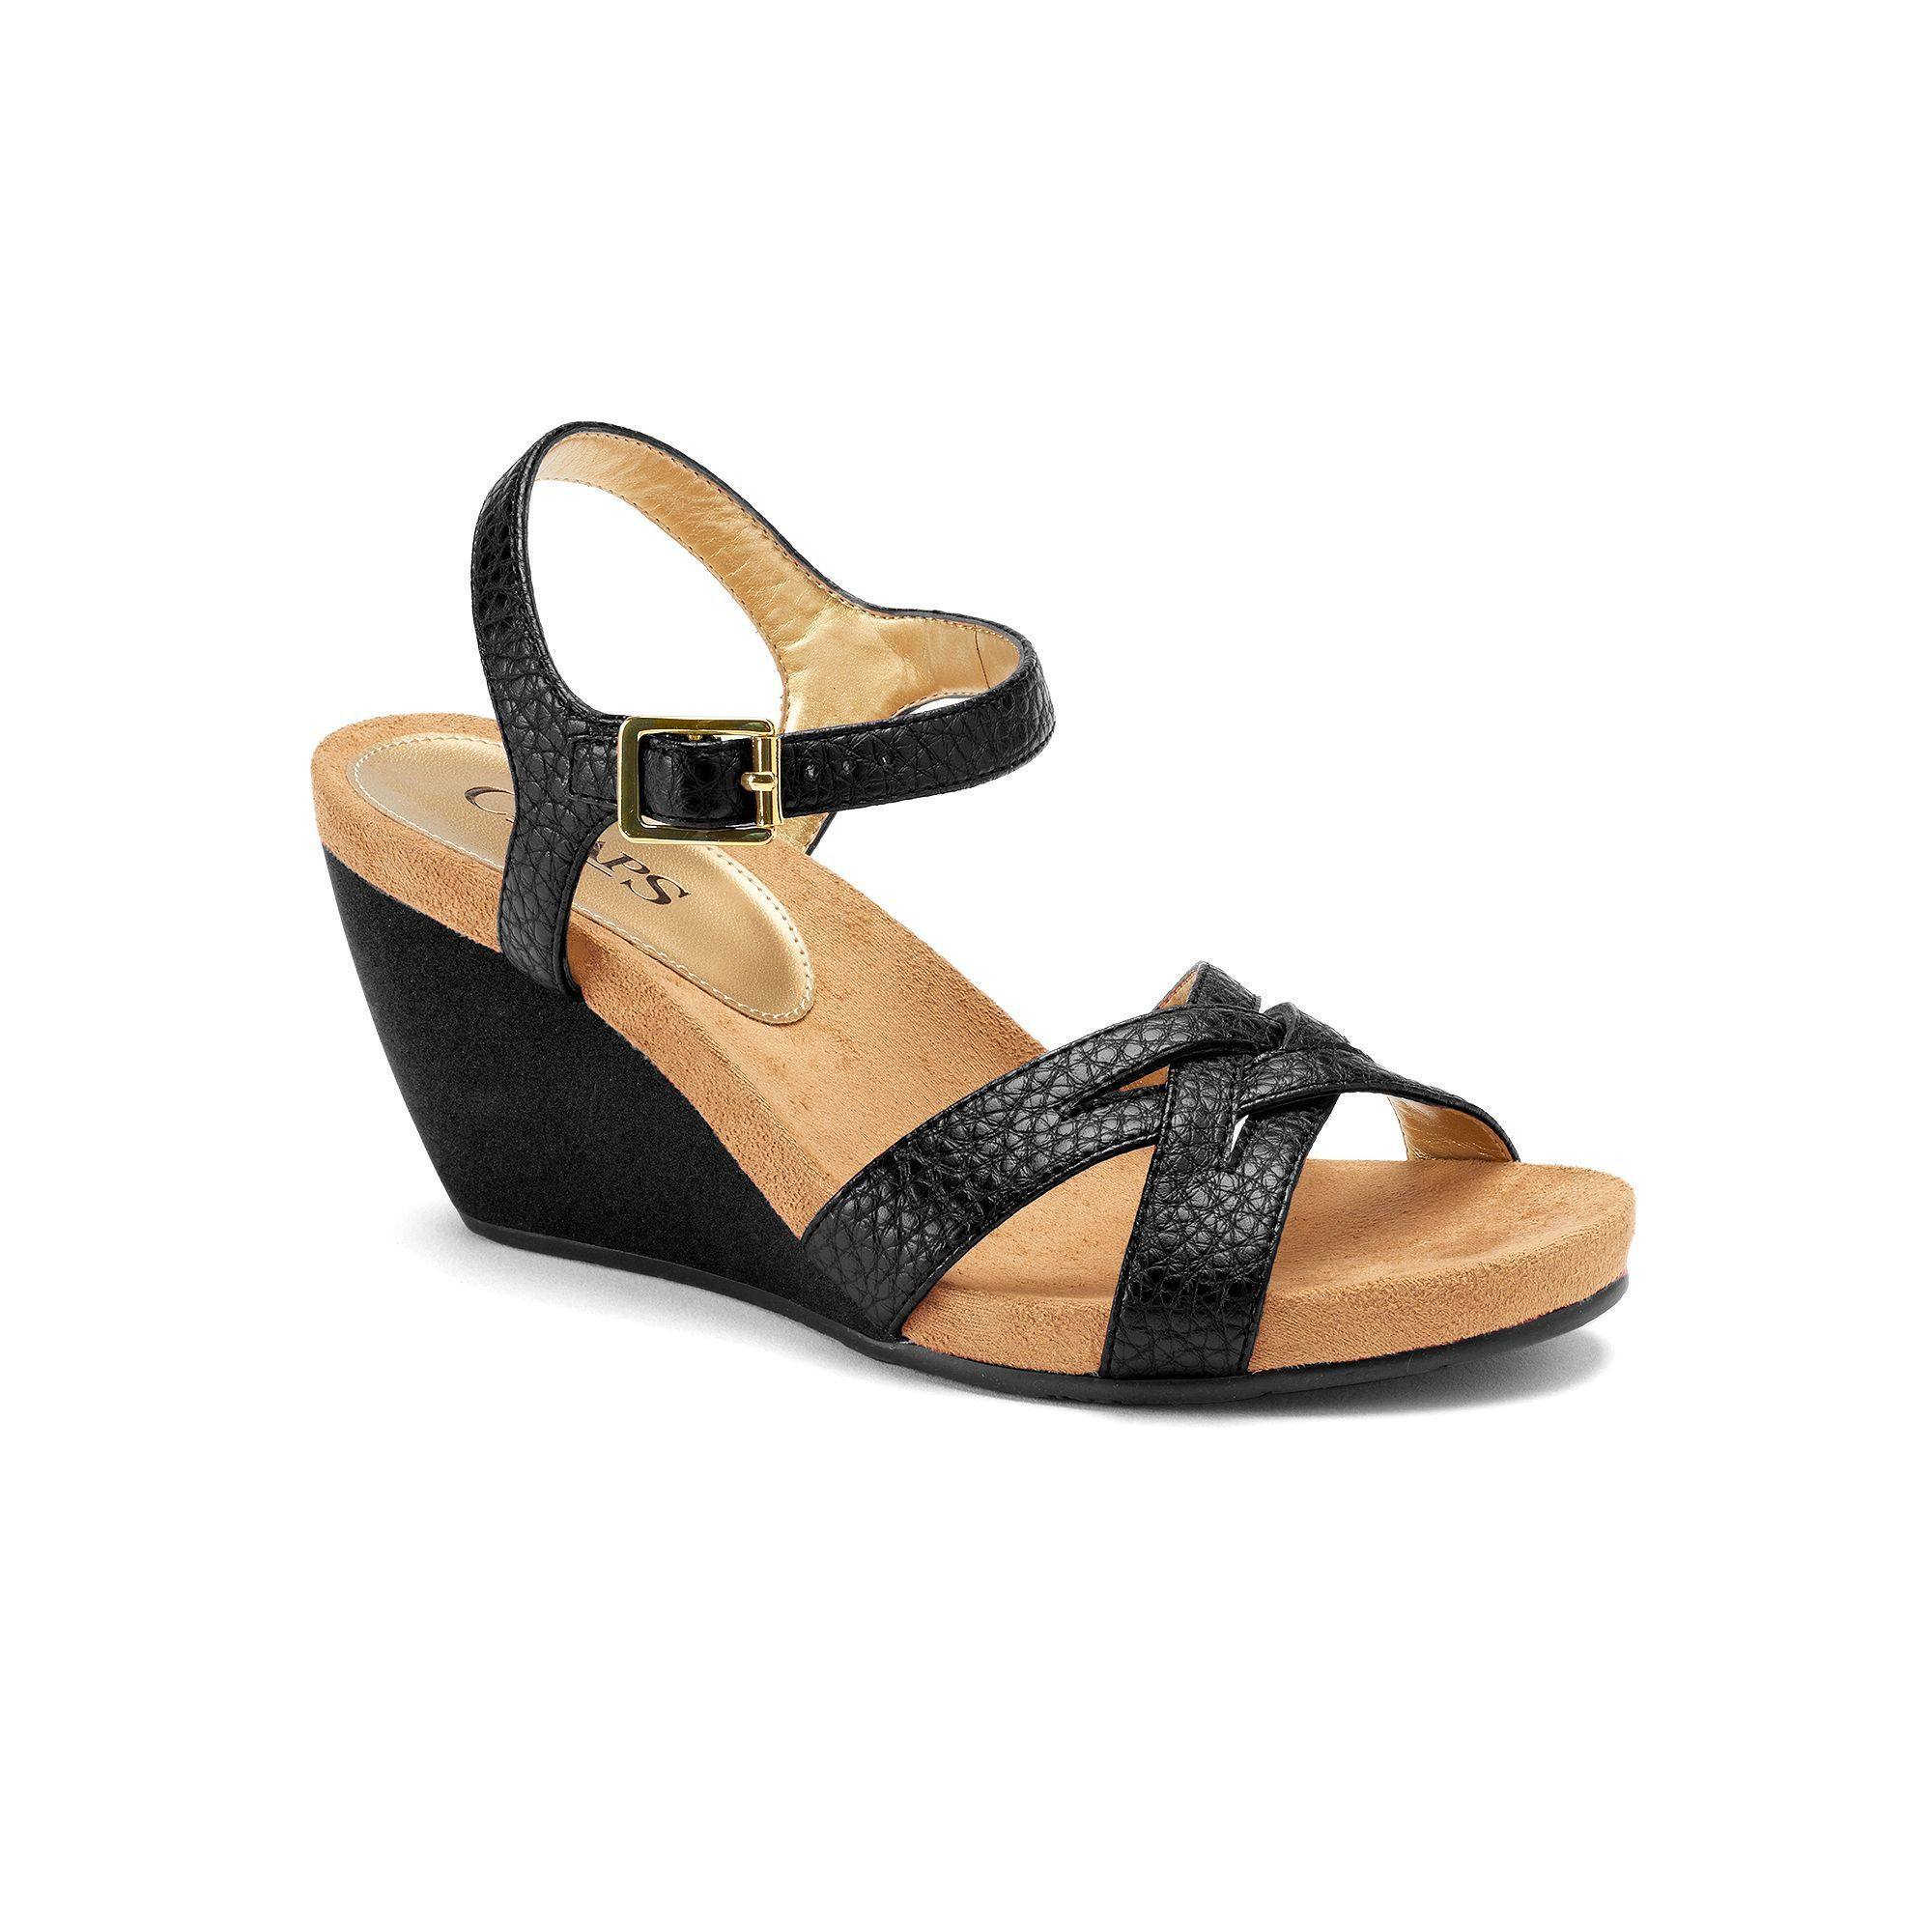 530cc84f2203 Chaps Reine Women s Wedge Sandals in 2019